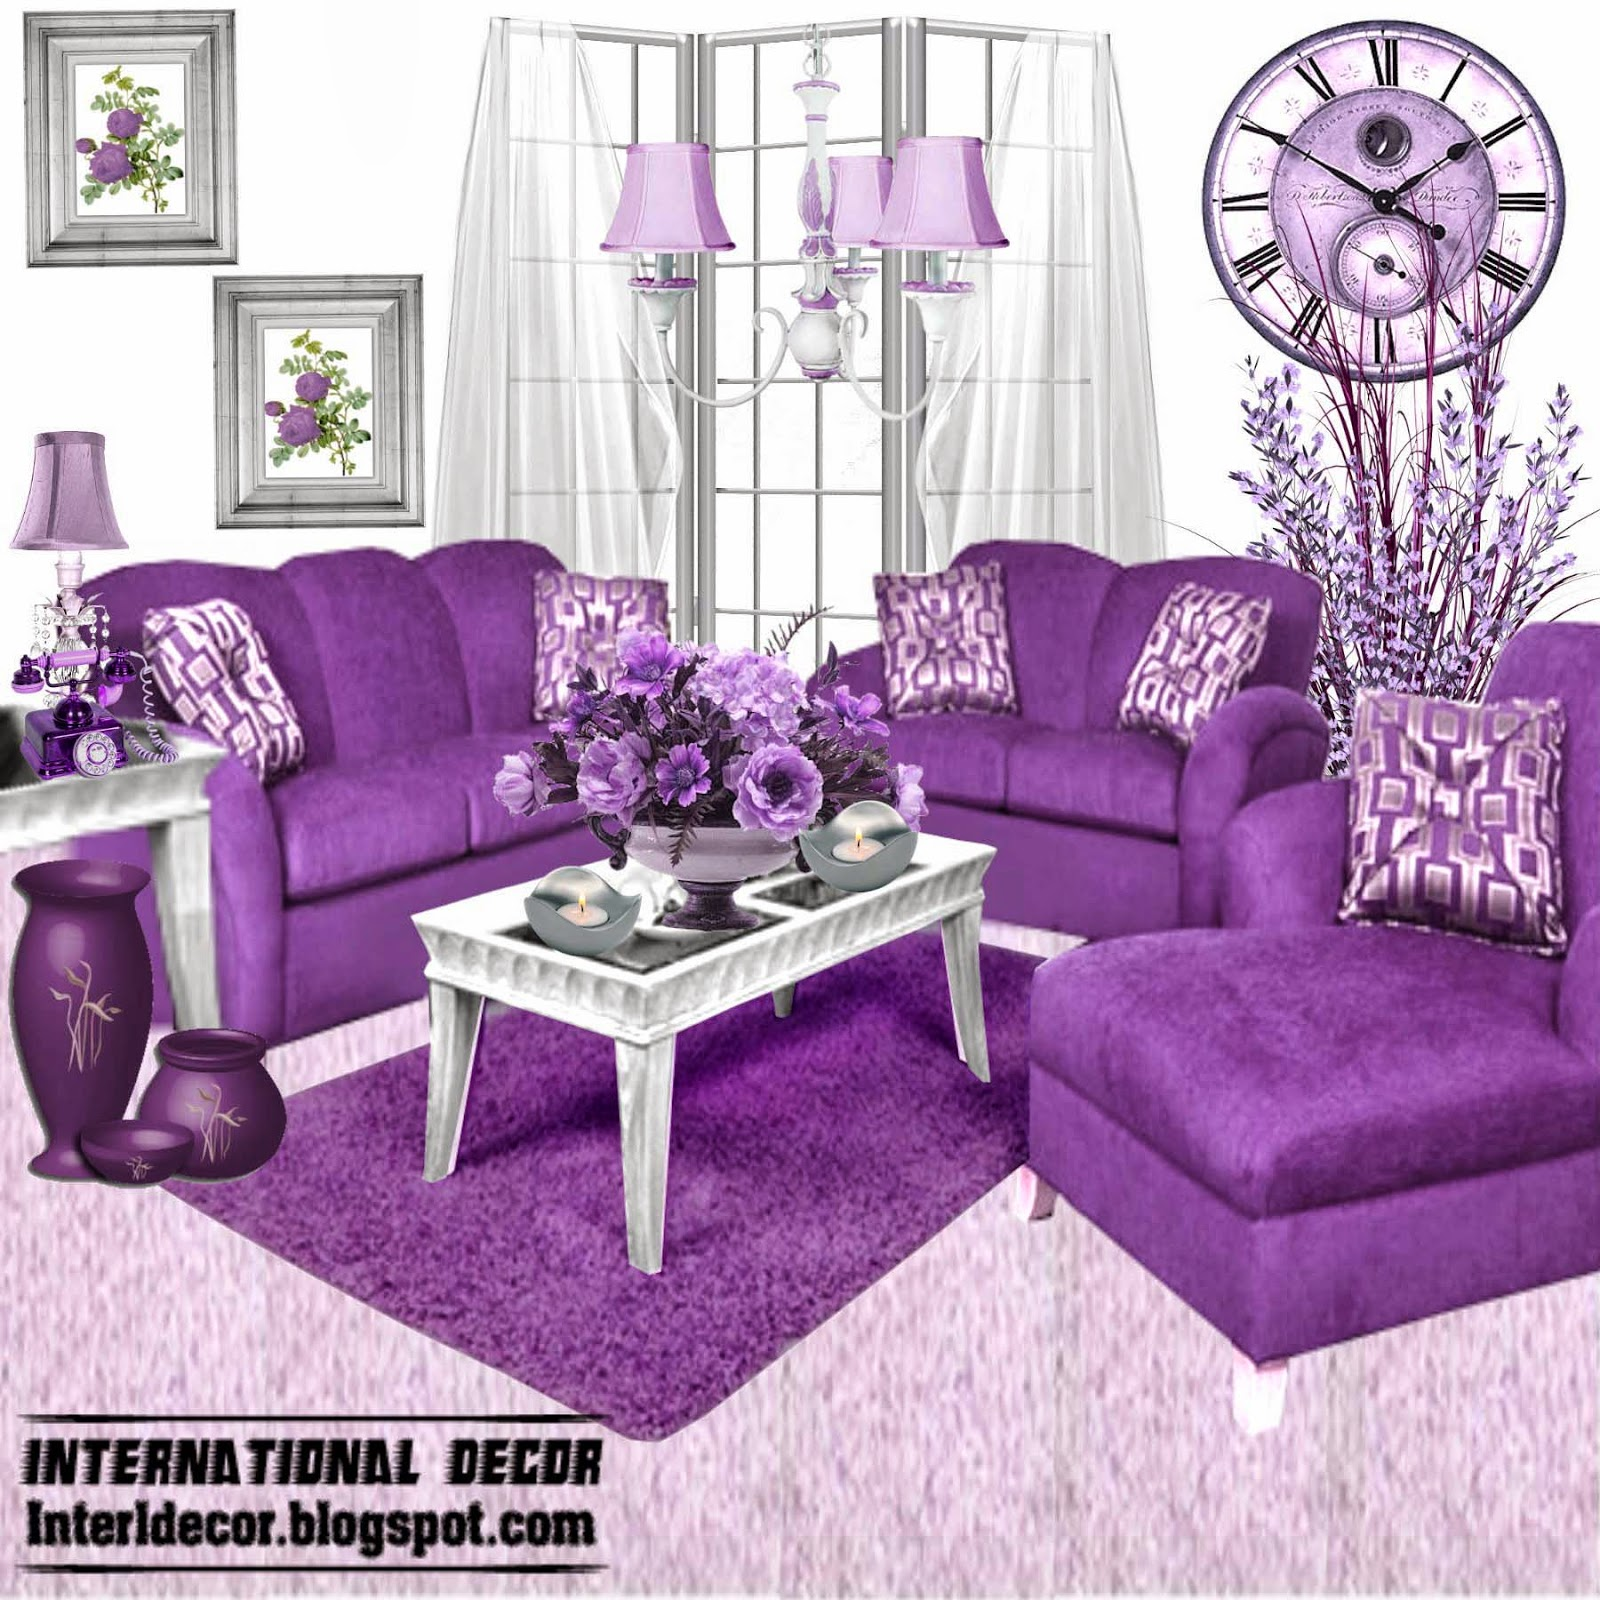 Luxury purple furniture sets sofas chairs for living for Living room chair set